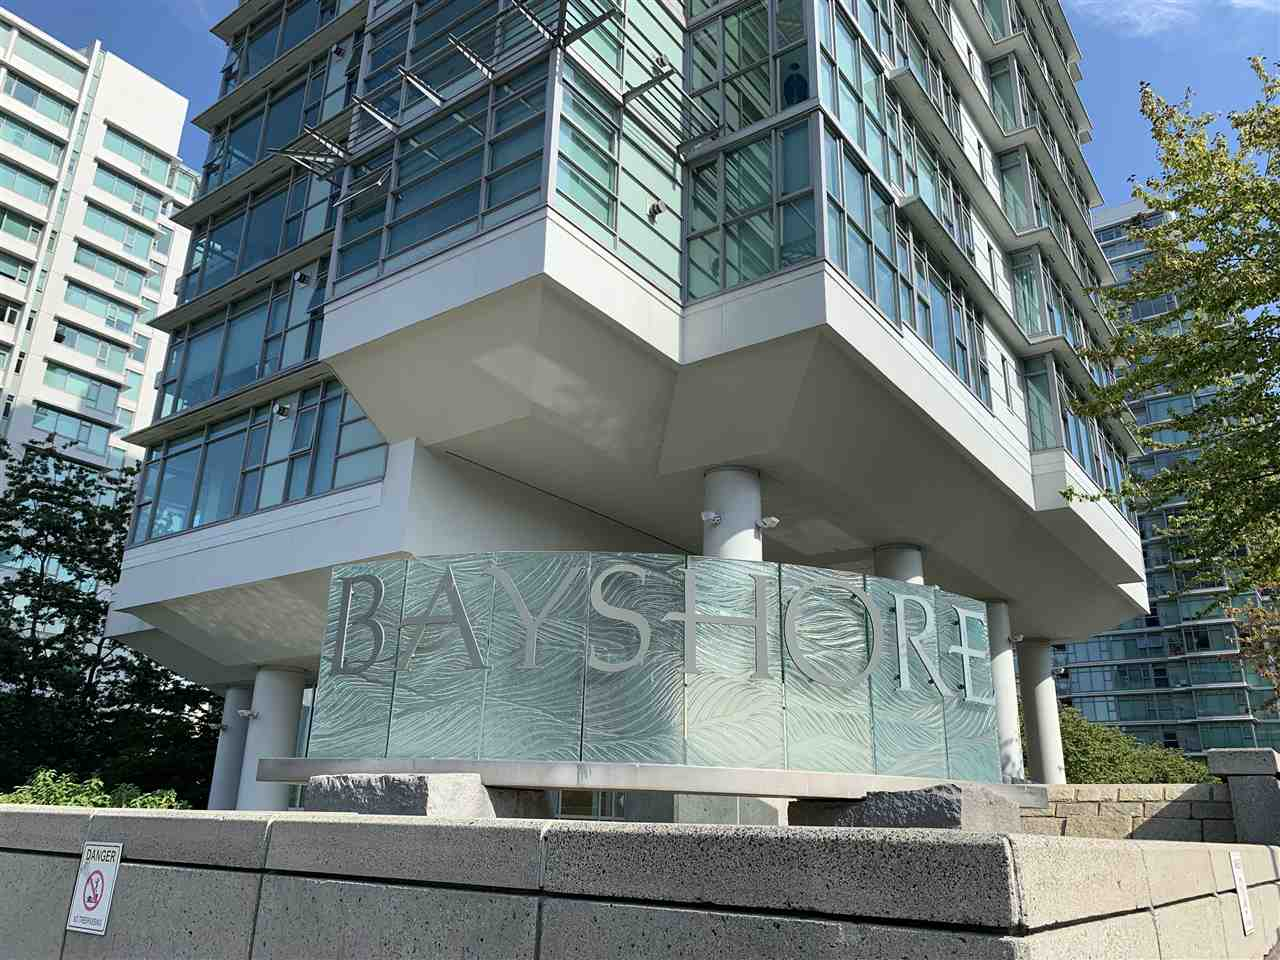 Rare opportunity!!! 1 bedroom at the Bayshore! Surrounded by natural beauty & views to the landscaped gardens, water features and cityscape. This Southeast corner jewel box - 877 sq ft. 1 bedroom, 1 bath plus den, 1 parking + storage locker, pied-a-terre is perfect for those individuals who are looking for privacy & discreet living while enjoying generous sized principles, room with black walnut hardwood floor & crown moulding. This full service building has a full-time concierge & lots of the guest parking all within walking distance to all of the conveniences and the best that Vancouver. has to offer - Stanley Park, the Sea Wall, shops, restaurants, cultural & O/D activities in the city. Pets & rentals are welcomed at your new principal residence or new investment site!